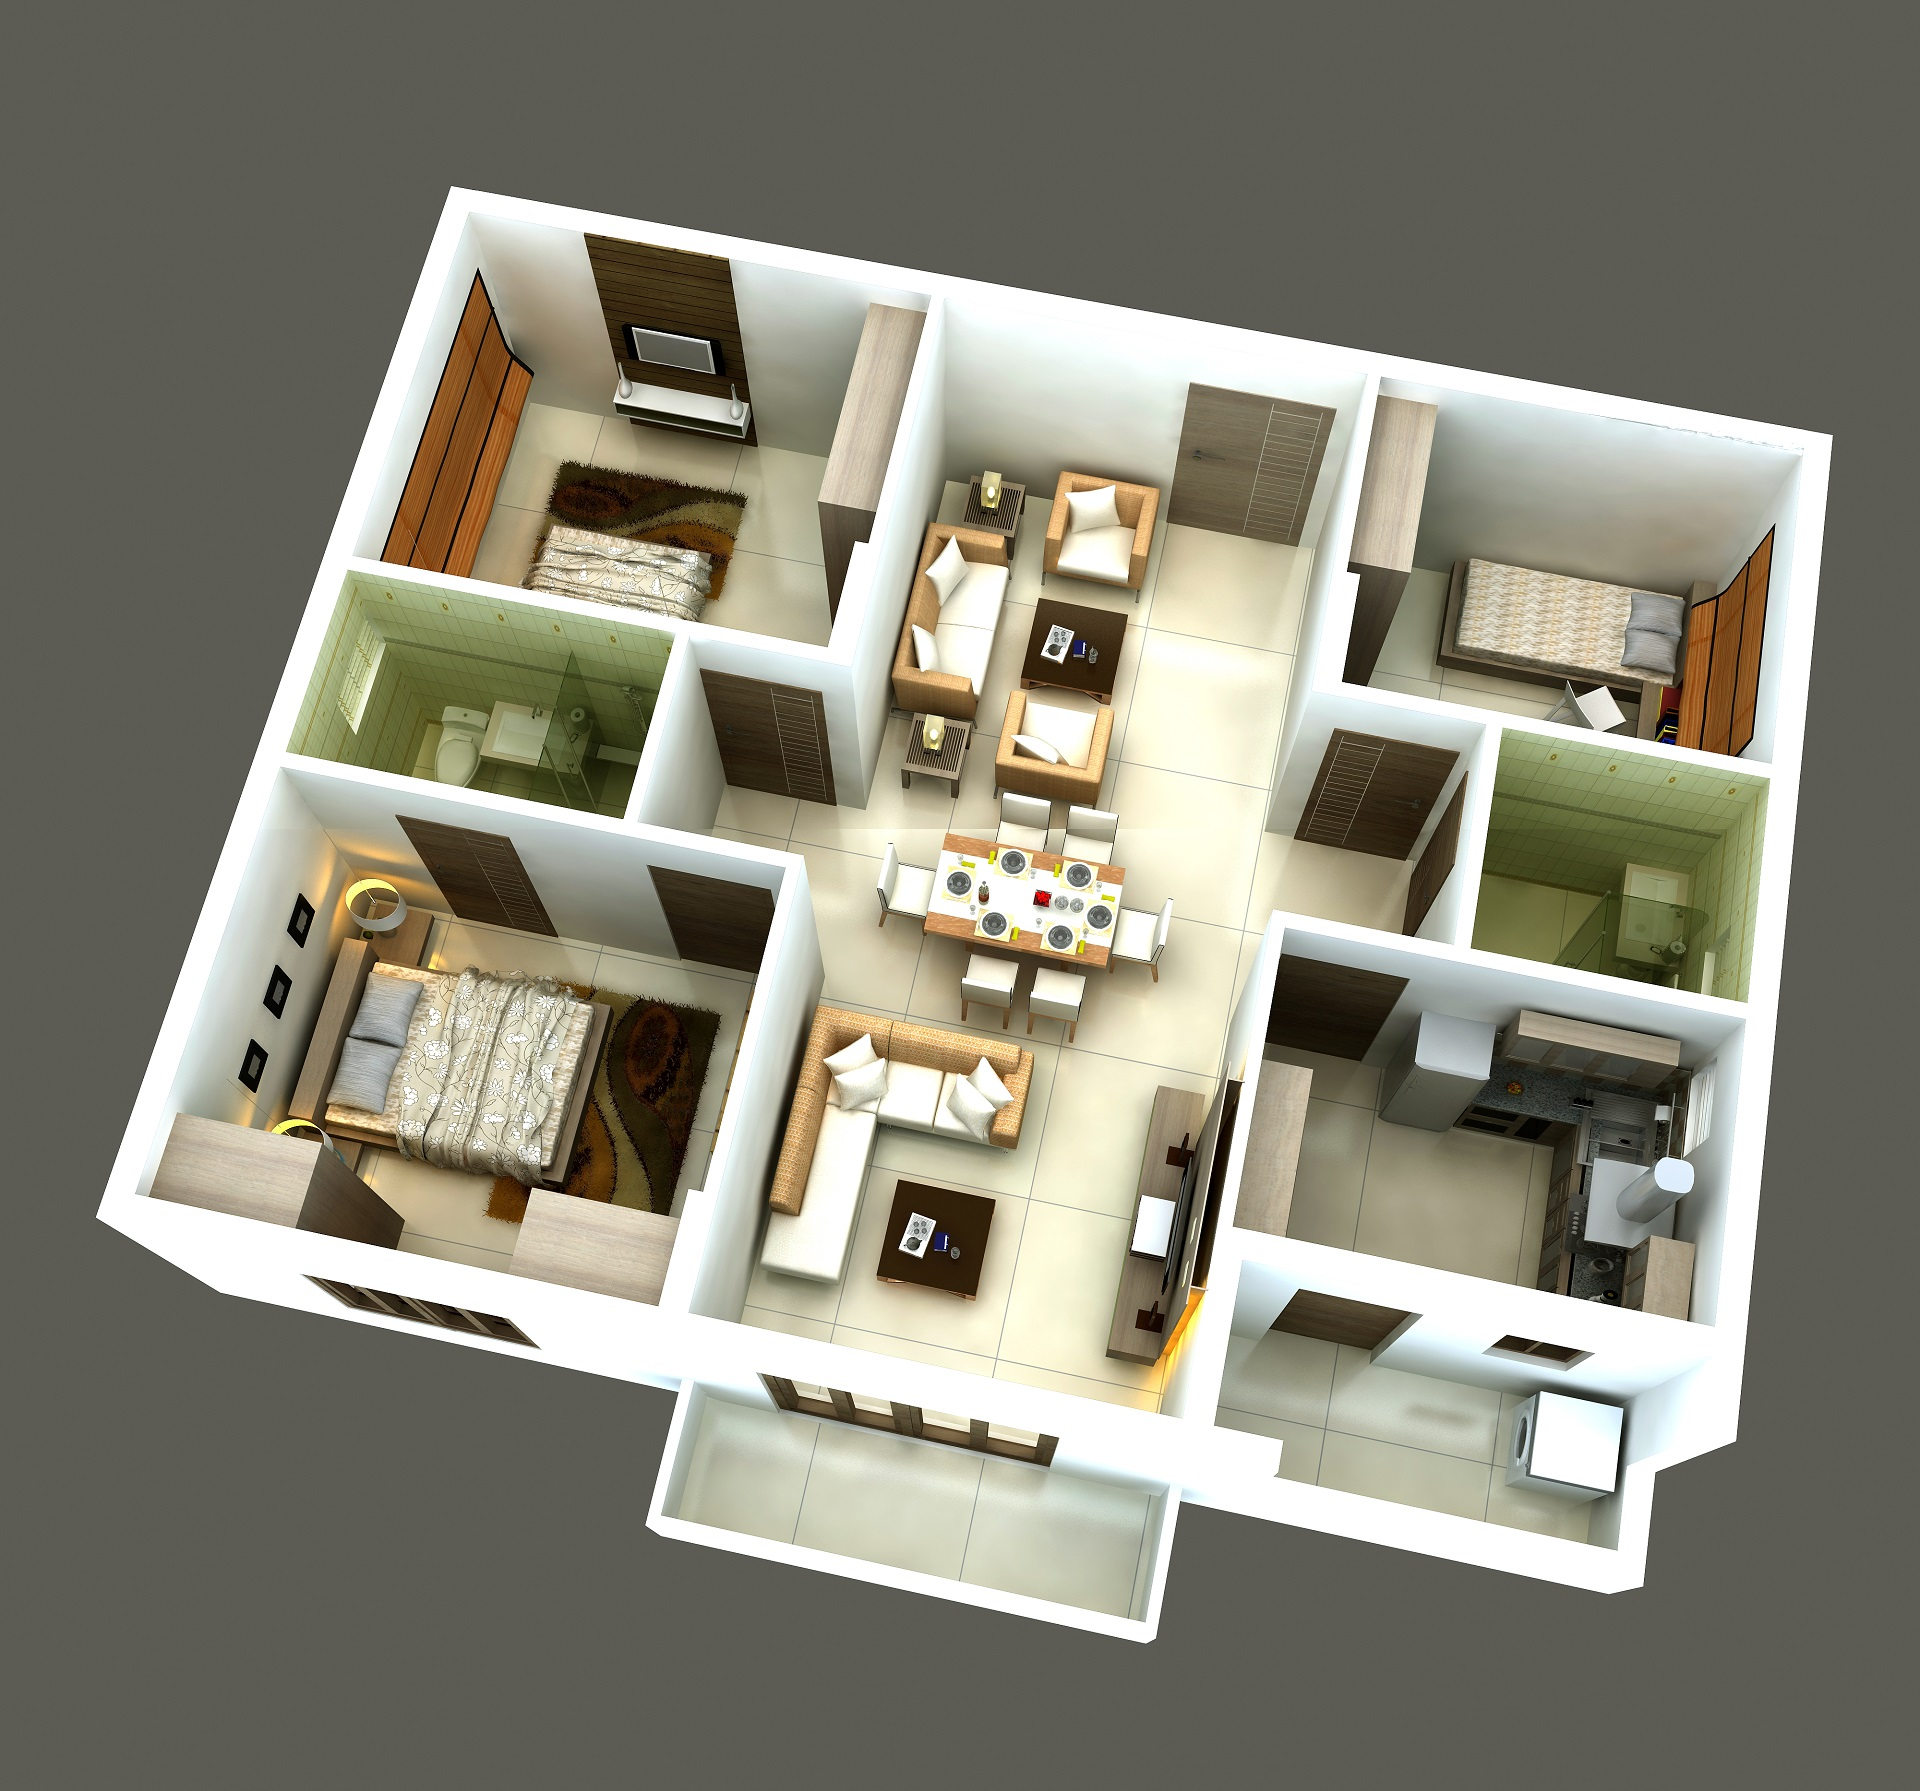 ar-concepts-emami-apartment-residential-north-three-bedroom-image-a